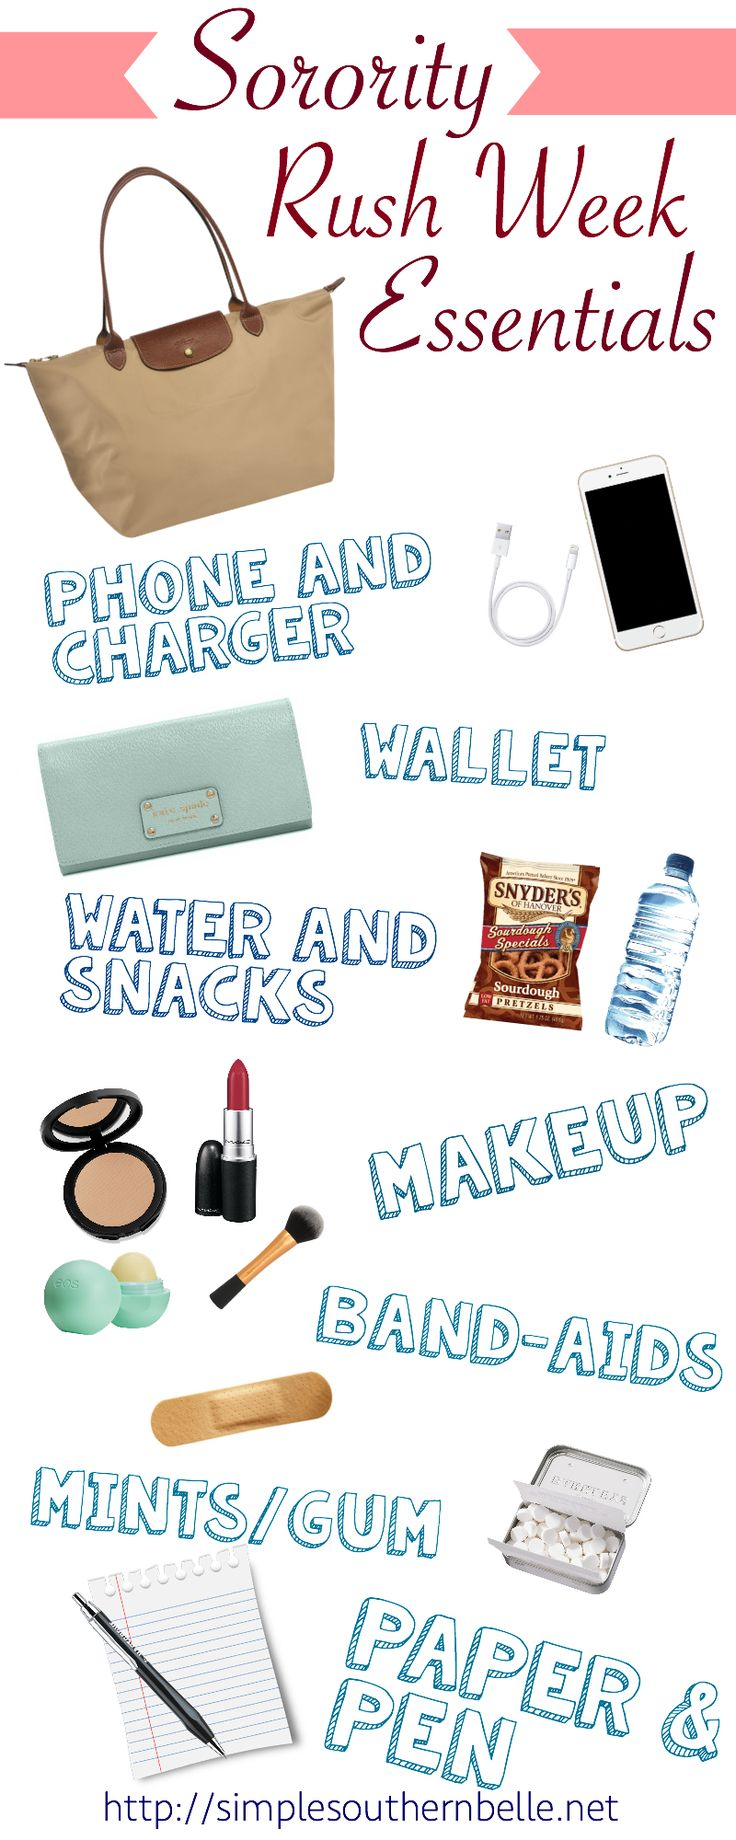 Sorority Rush Week Essentials: These 8 items will help calm your nerves and have you prepared for anything during rush week! http://simplesouthernbelle.net